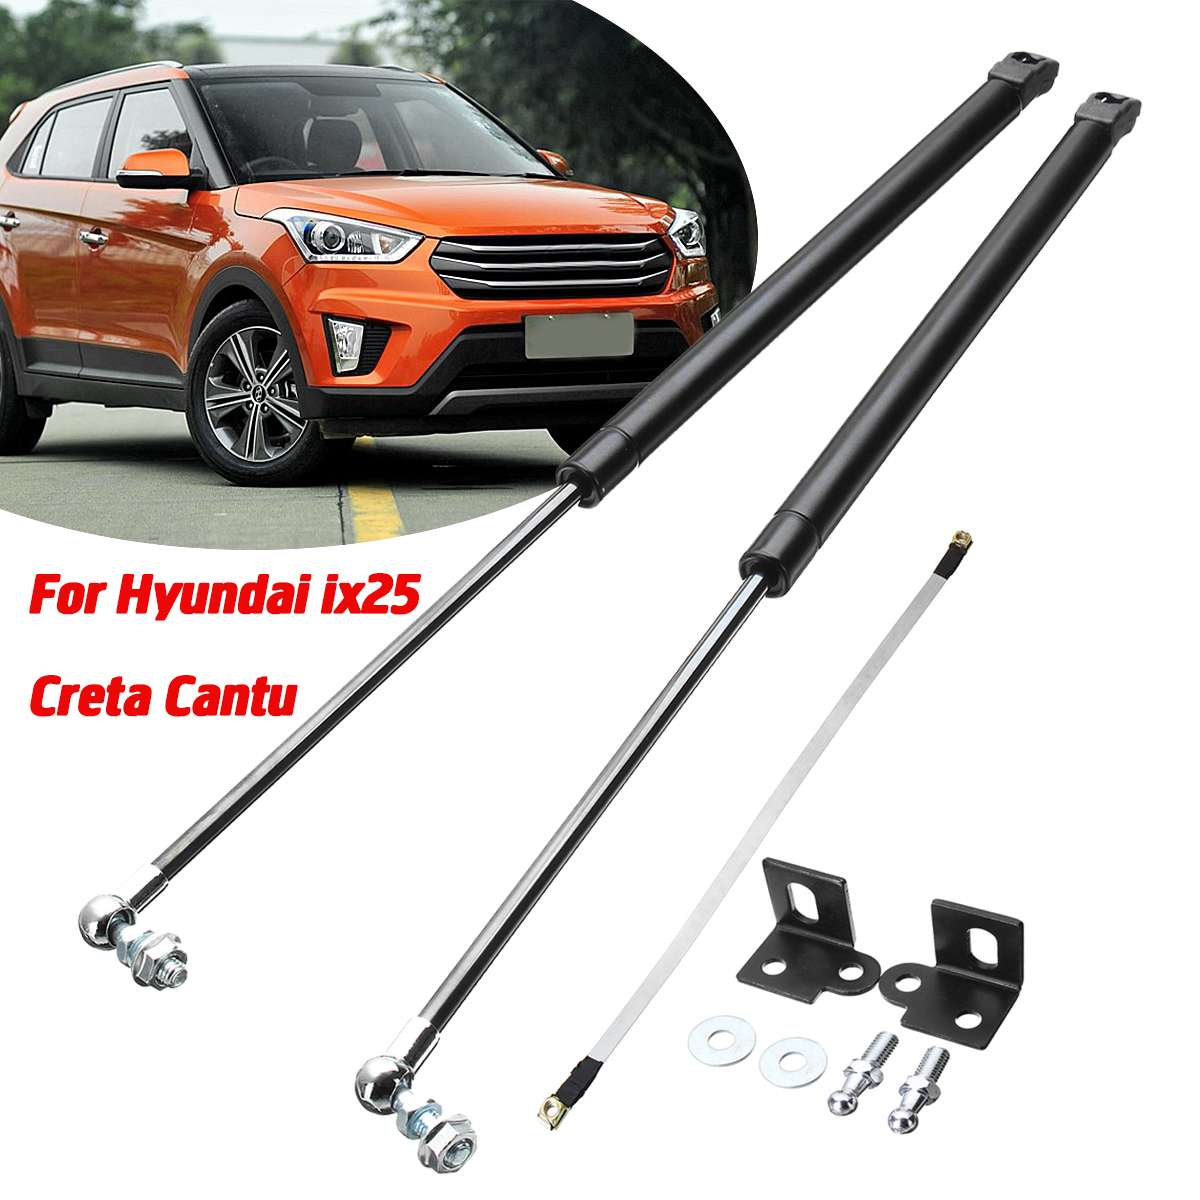 Excluding Hybrid 6489 Front Hood Gas Lift Supports Struts Shocks Dampers for 2011 2012 2013 Hyundai Sonata SG367017 81161-3Q000 2 Qty